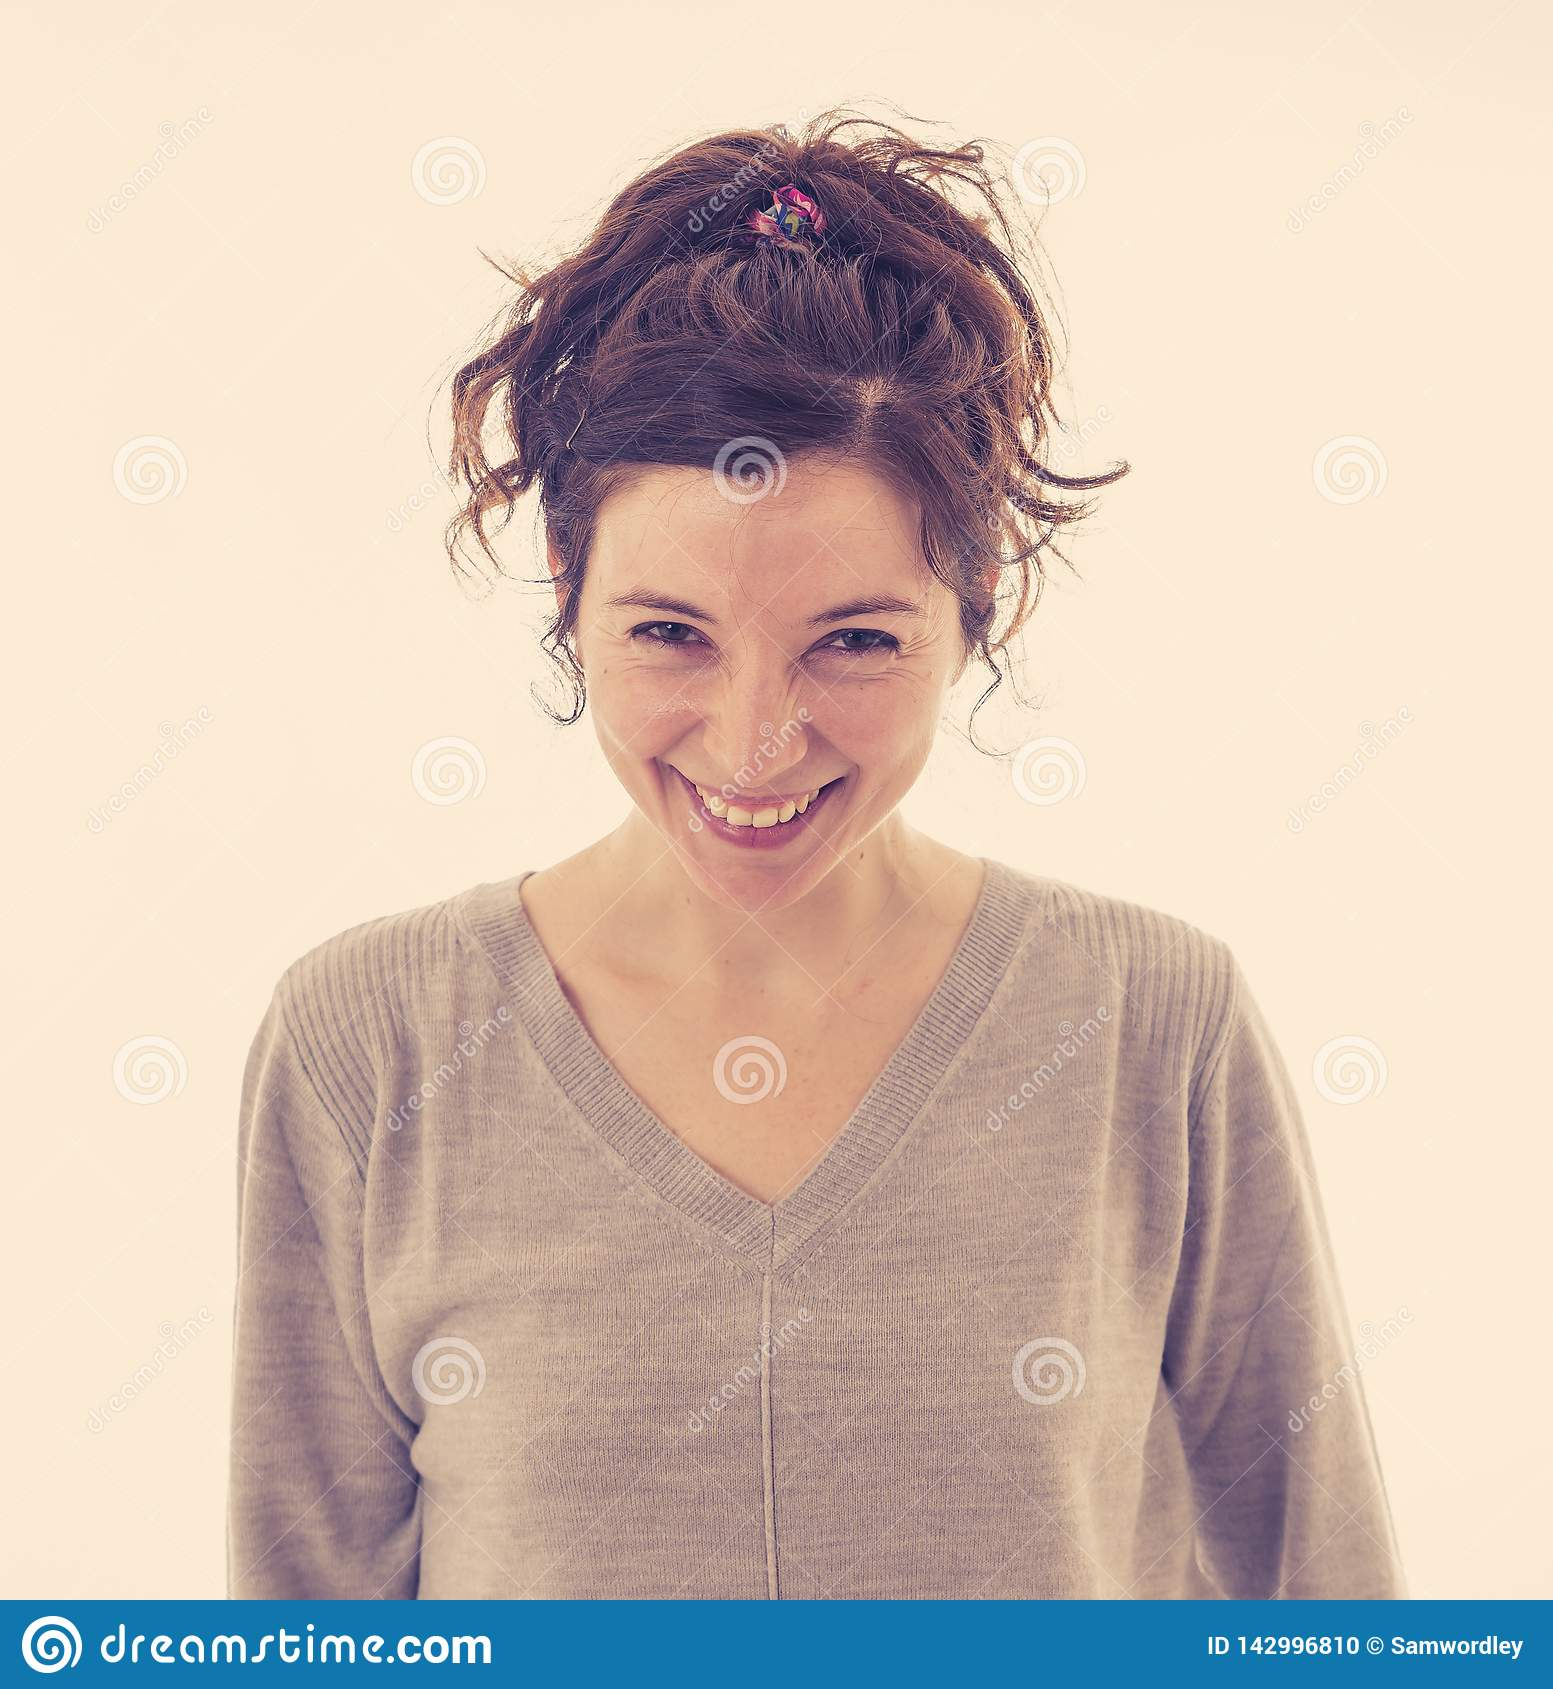 Portrait of young attractive cheerful woman with smiling happy face. Human expressions and emotions